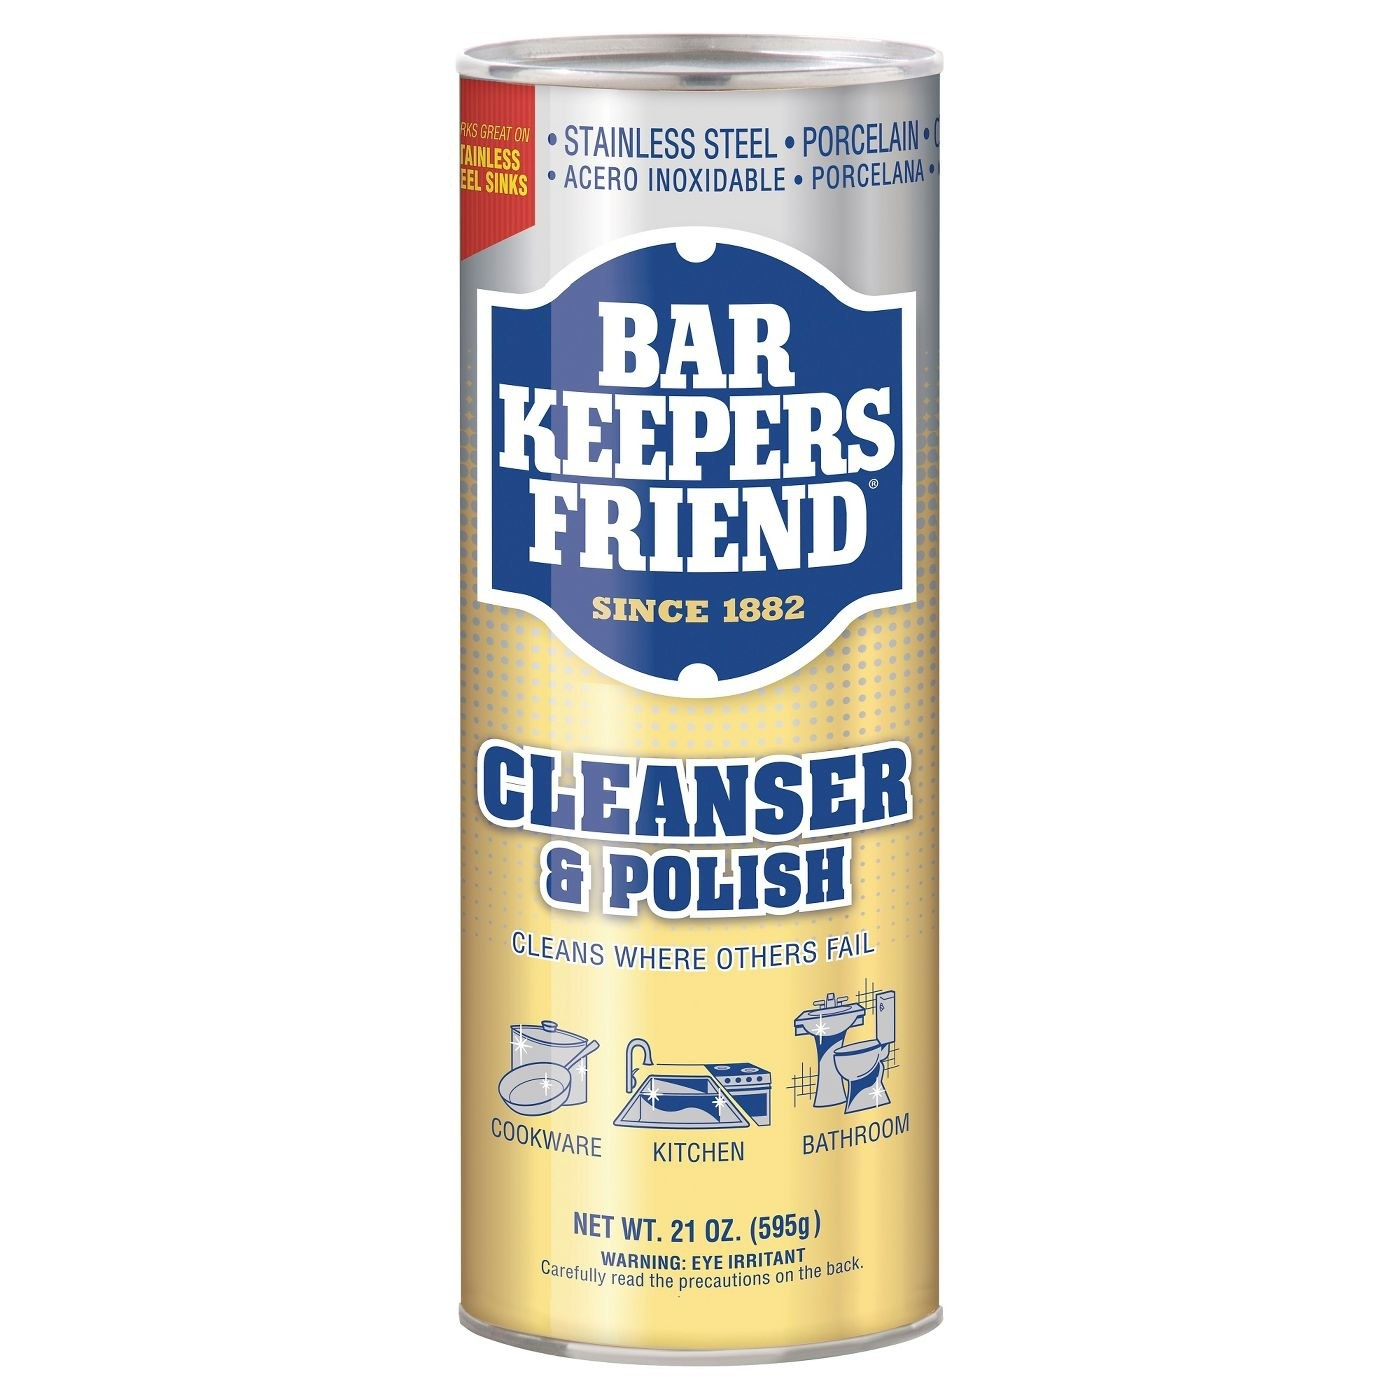 Bottle of cleanser and polish